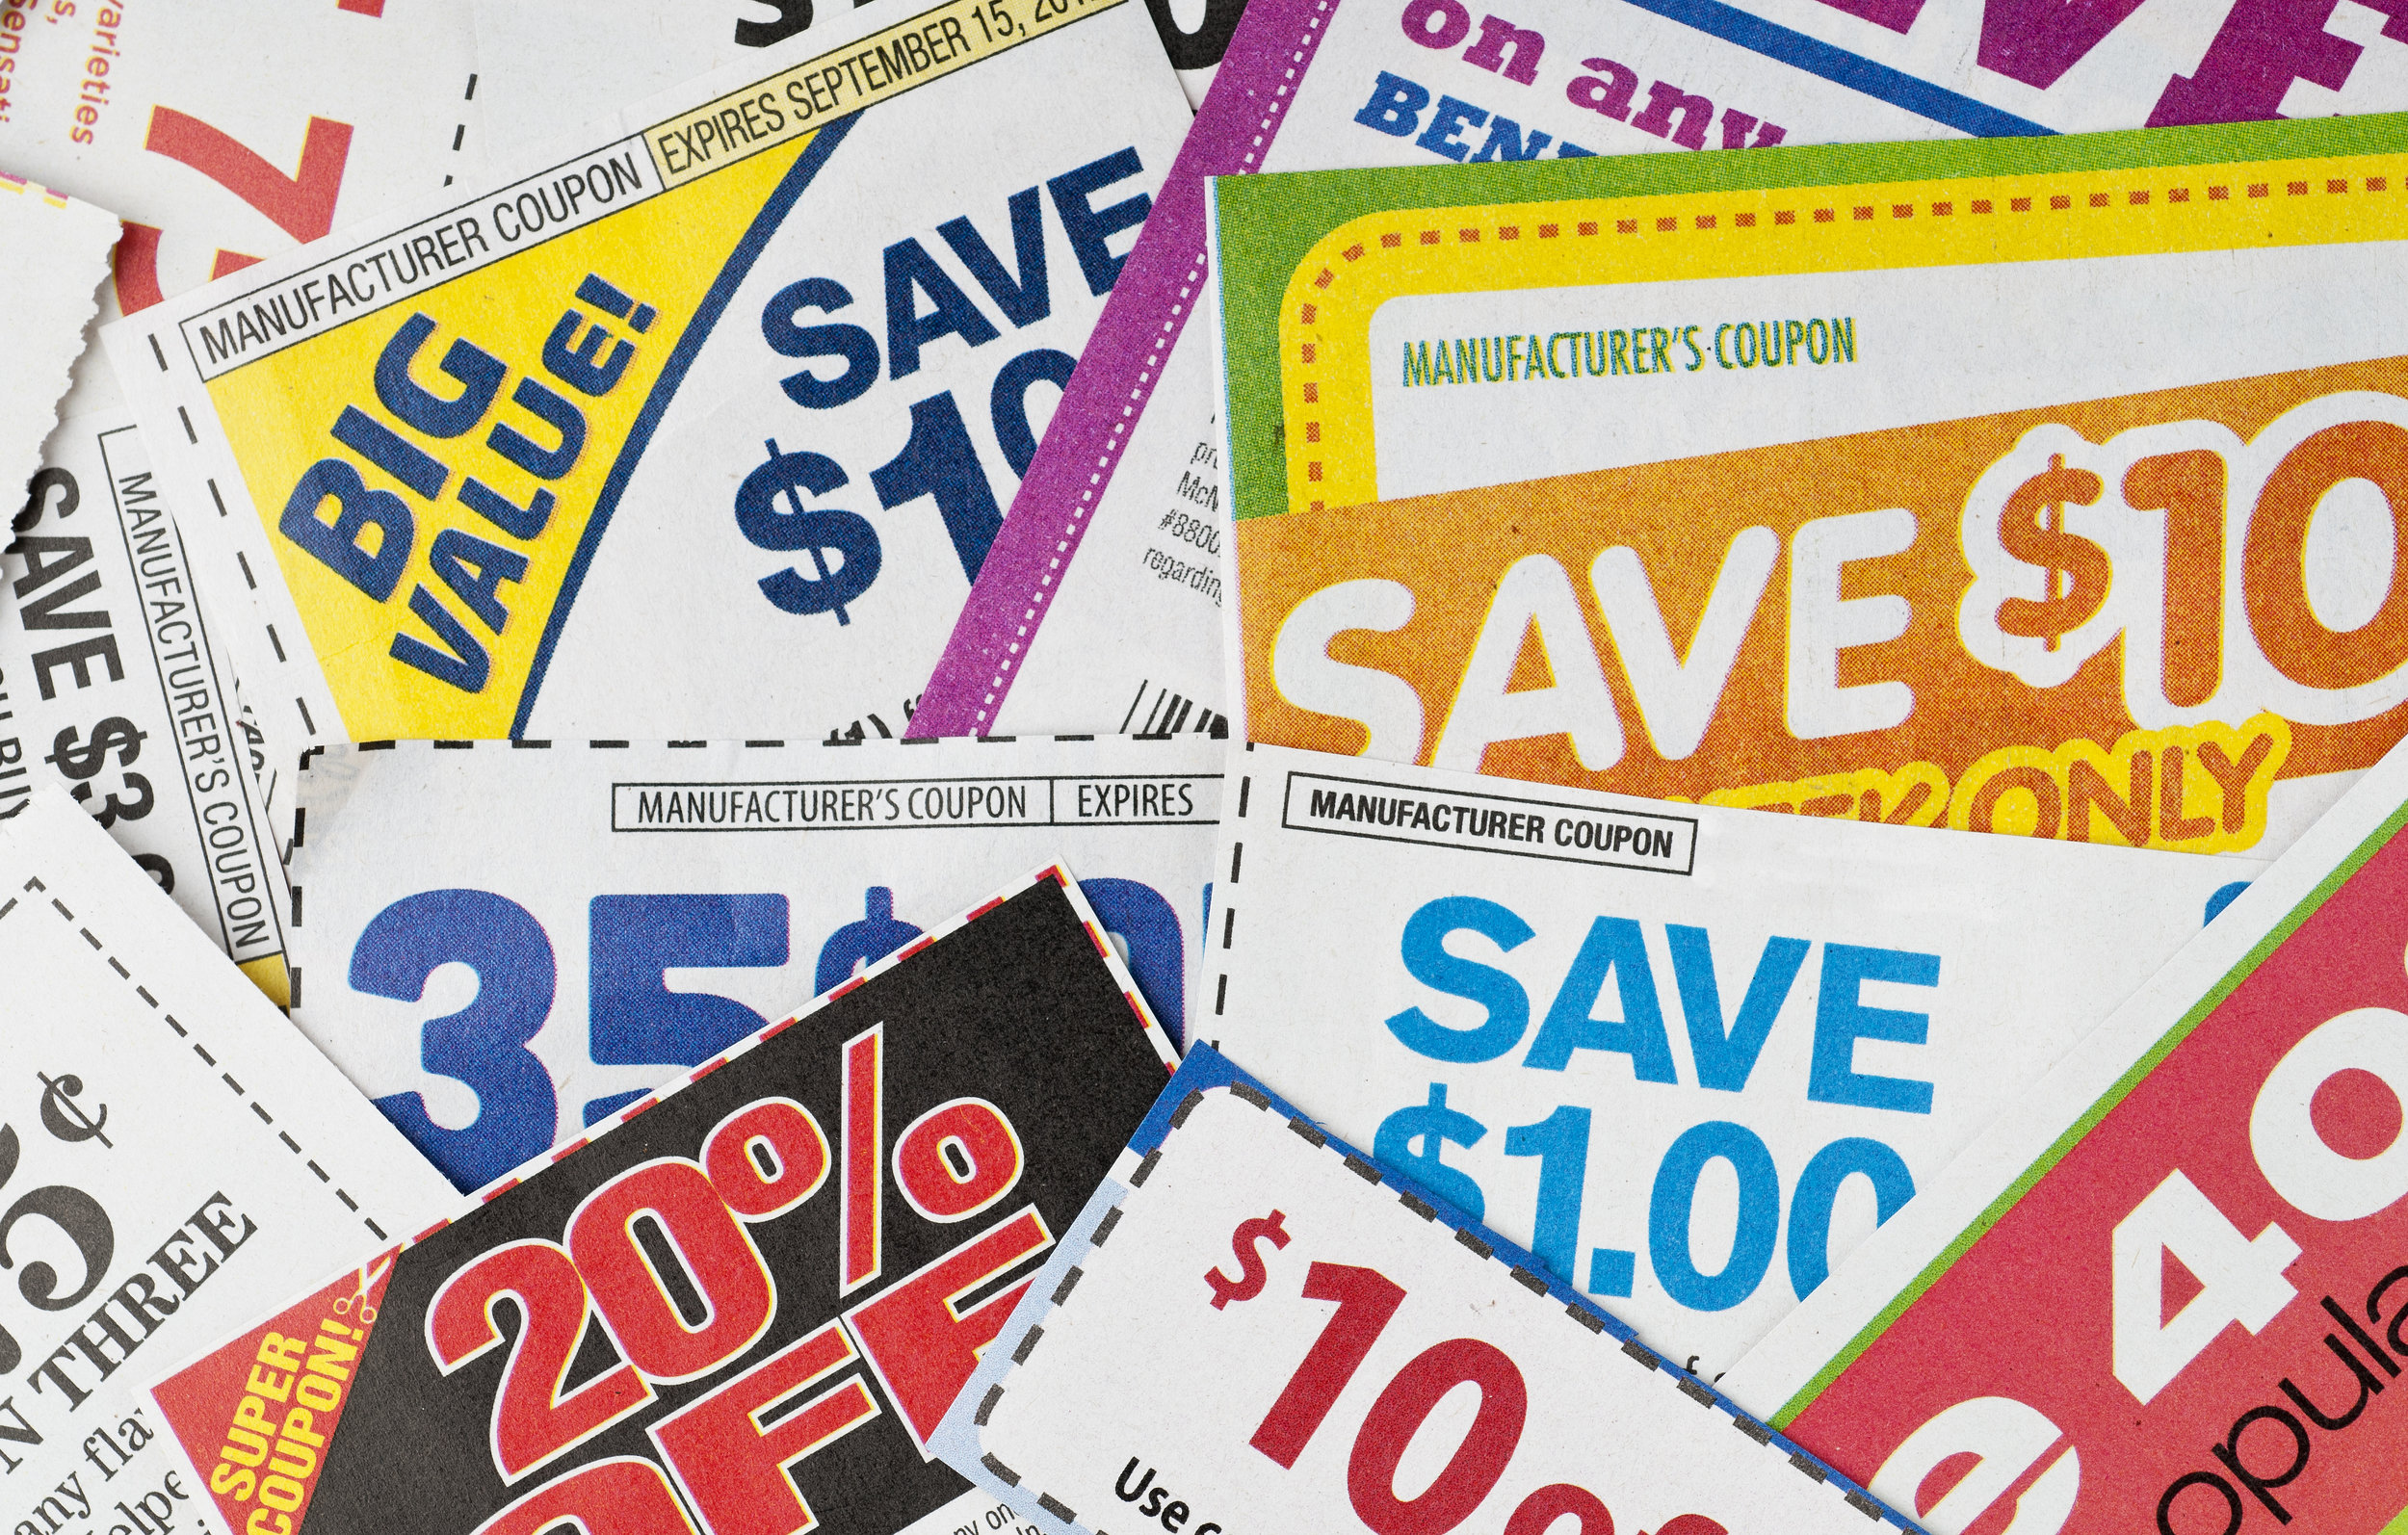 our favorite coupon sites - All of the web resources featured on MobileCoupons.com offer active coupons and deals that you can use TODAY. Learn more about our favorite places to find awesome coupons!